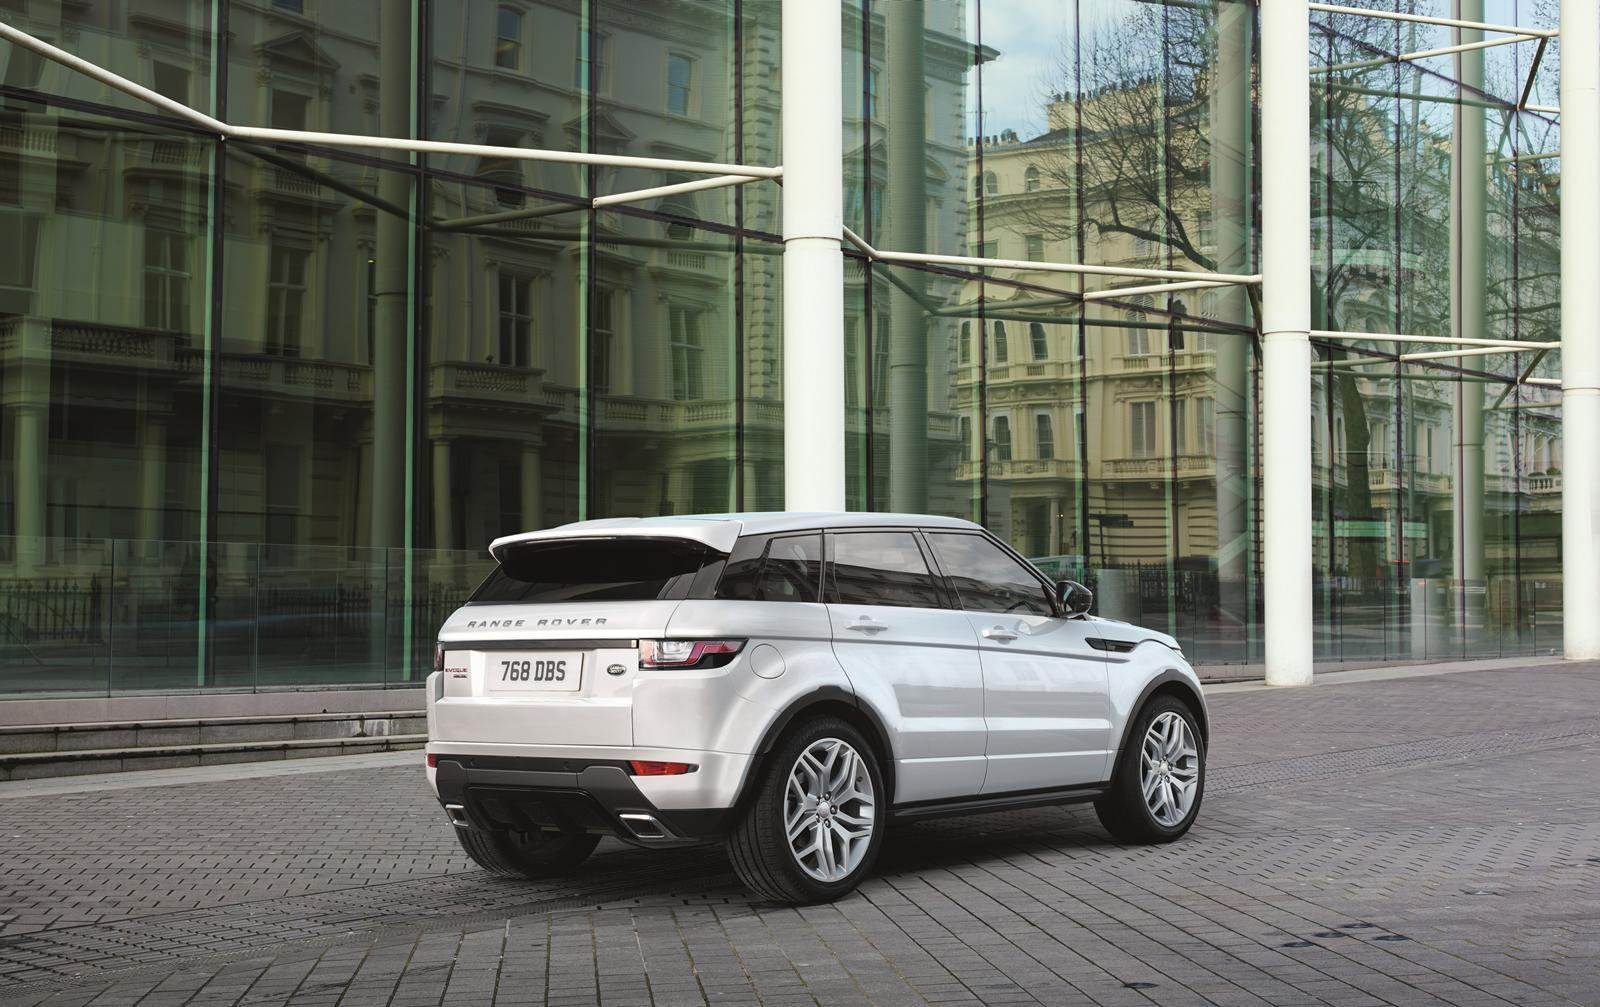 2016 range rover evoque prices start from 30 200 in the uk autoevolution. Black Bedroom Furniture Sets. Home Design Ideas